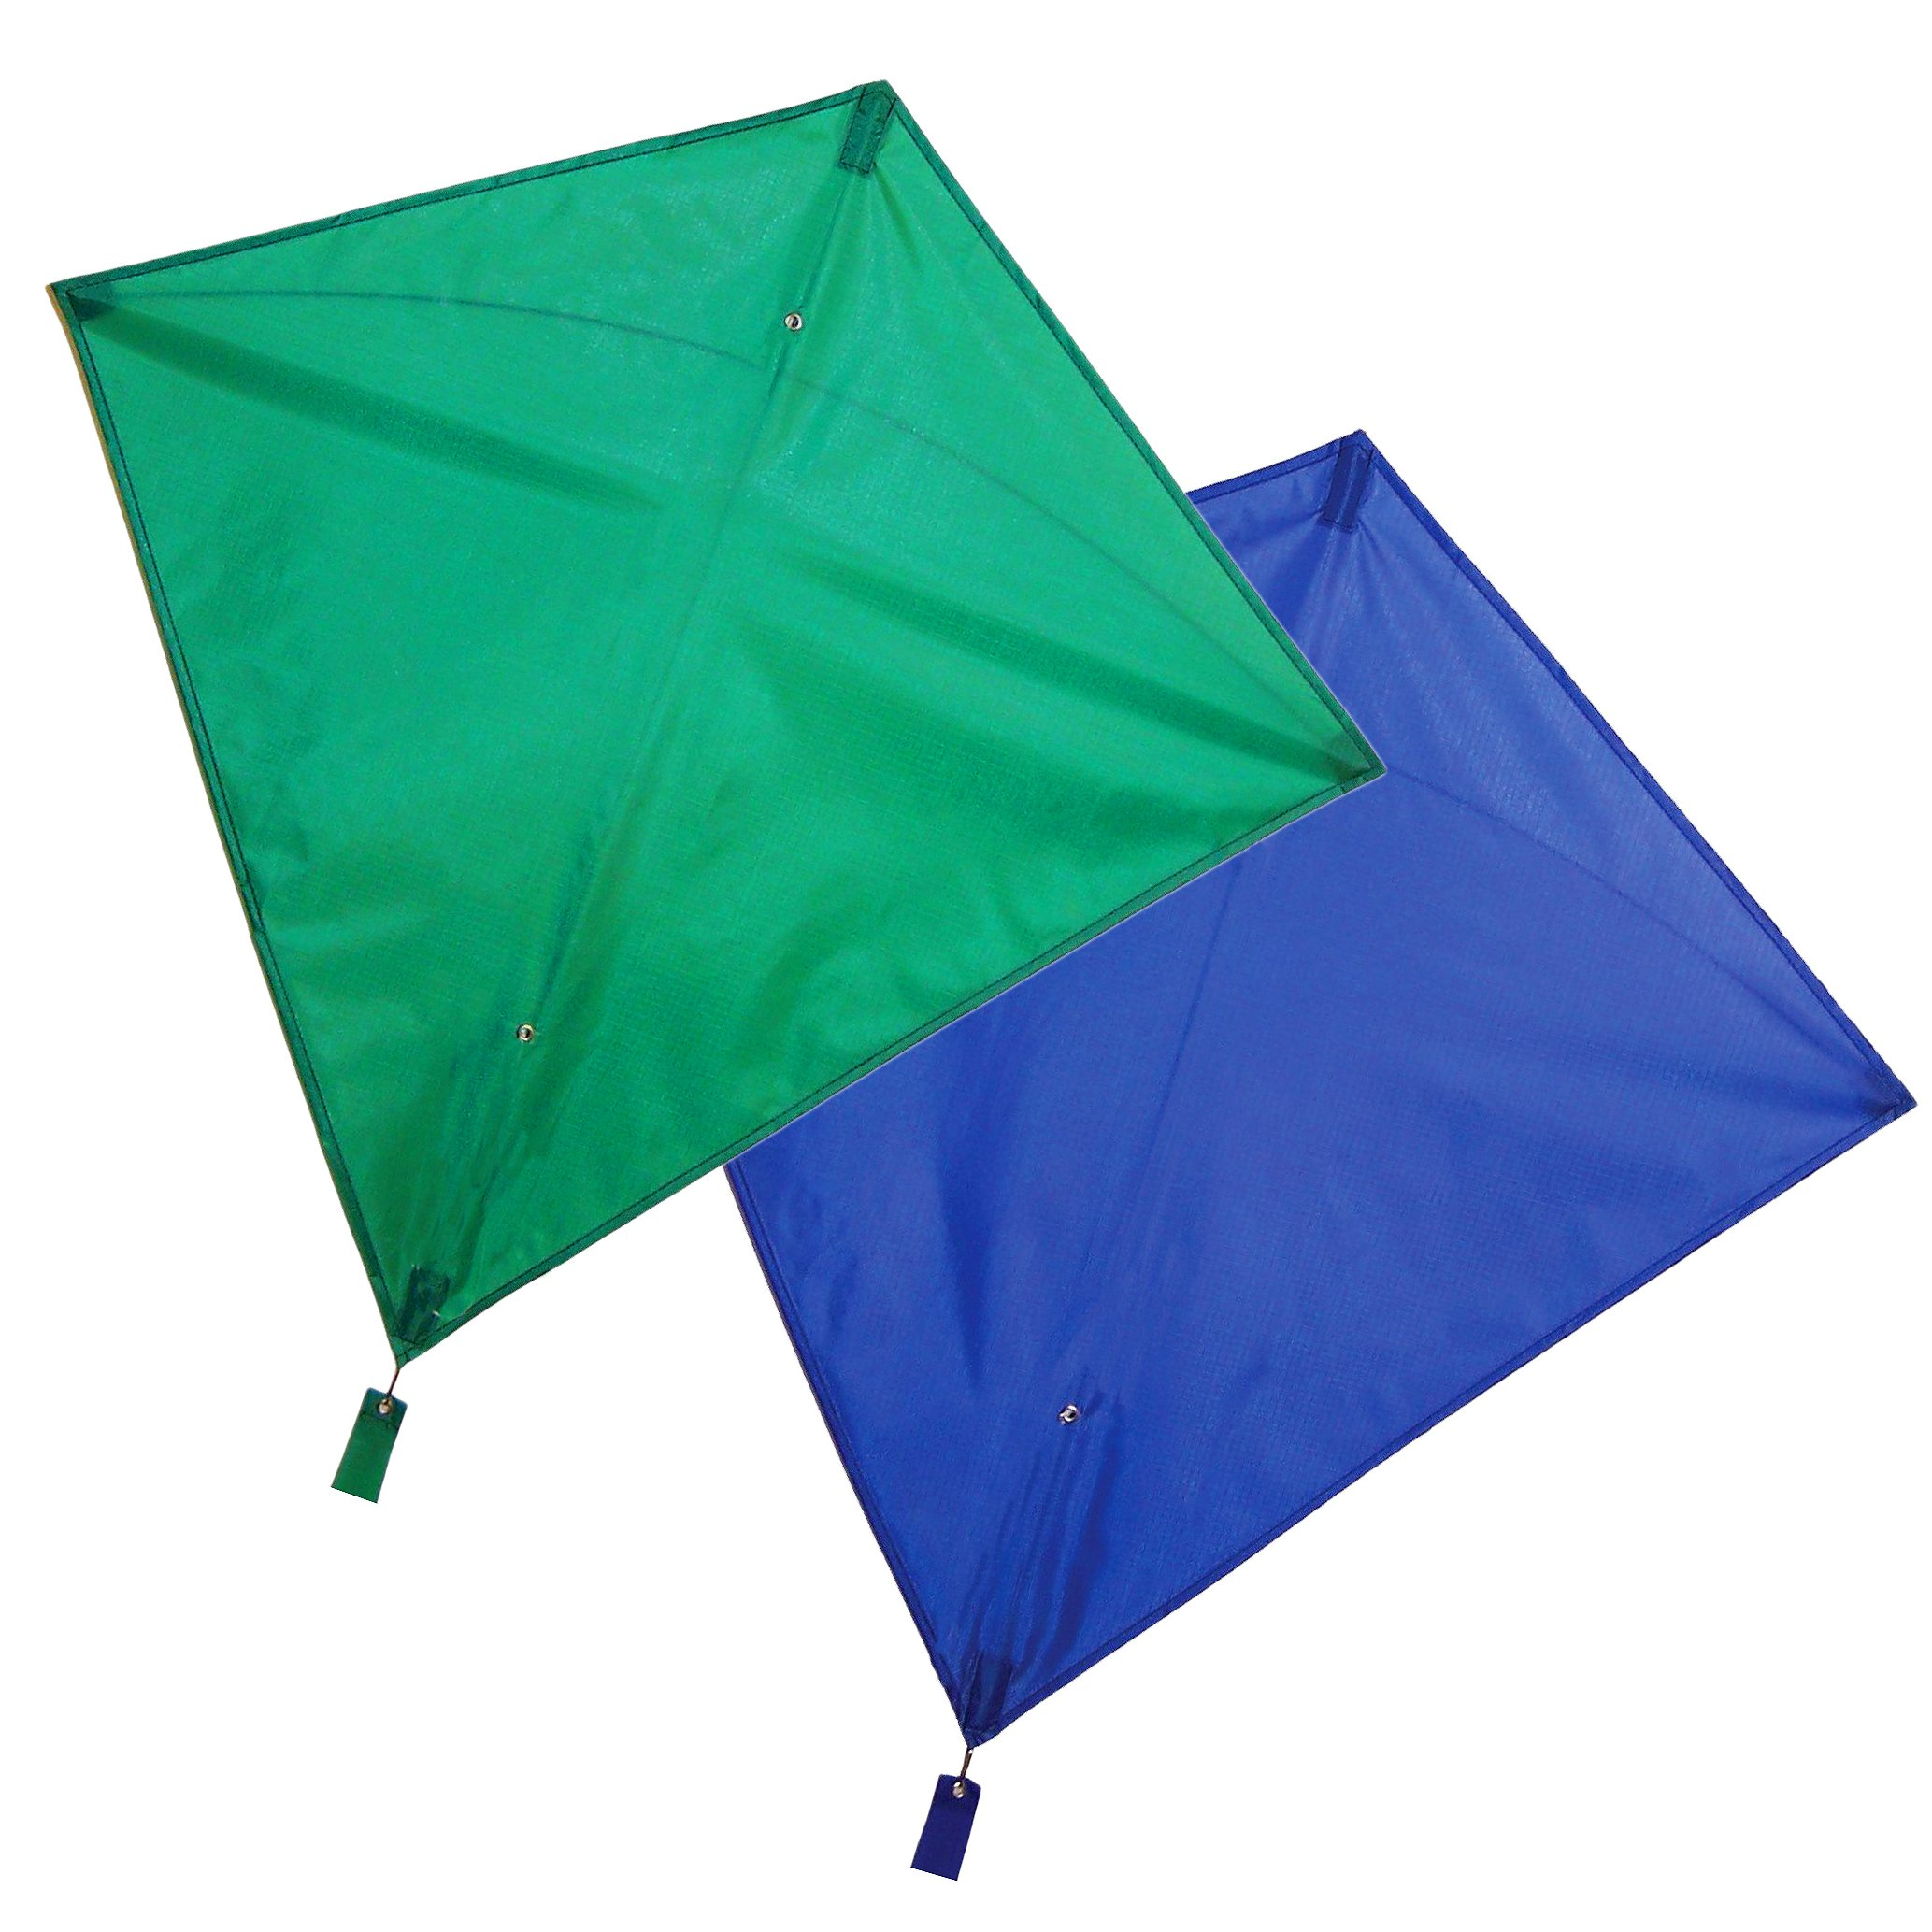 Maven Gifts: In The Breeze 2-Pack Kite Bundle – 30-Inch Green Colorfly Diamond Kite with 30-Inch Blue Colorfly Diamond Kite – Great for Beginners and Kids